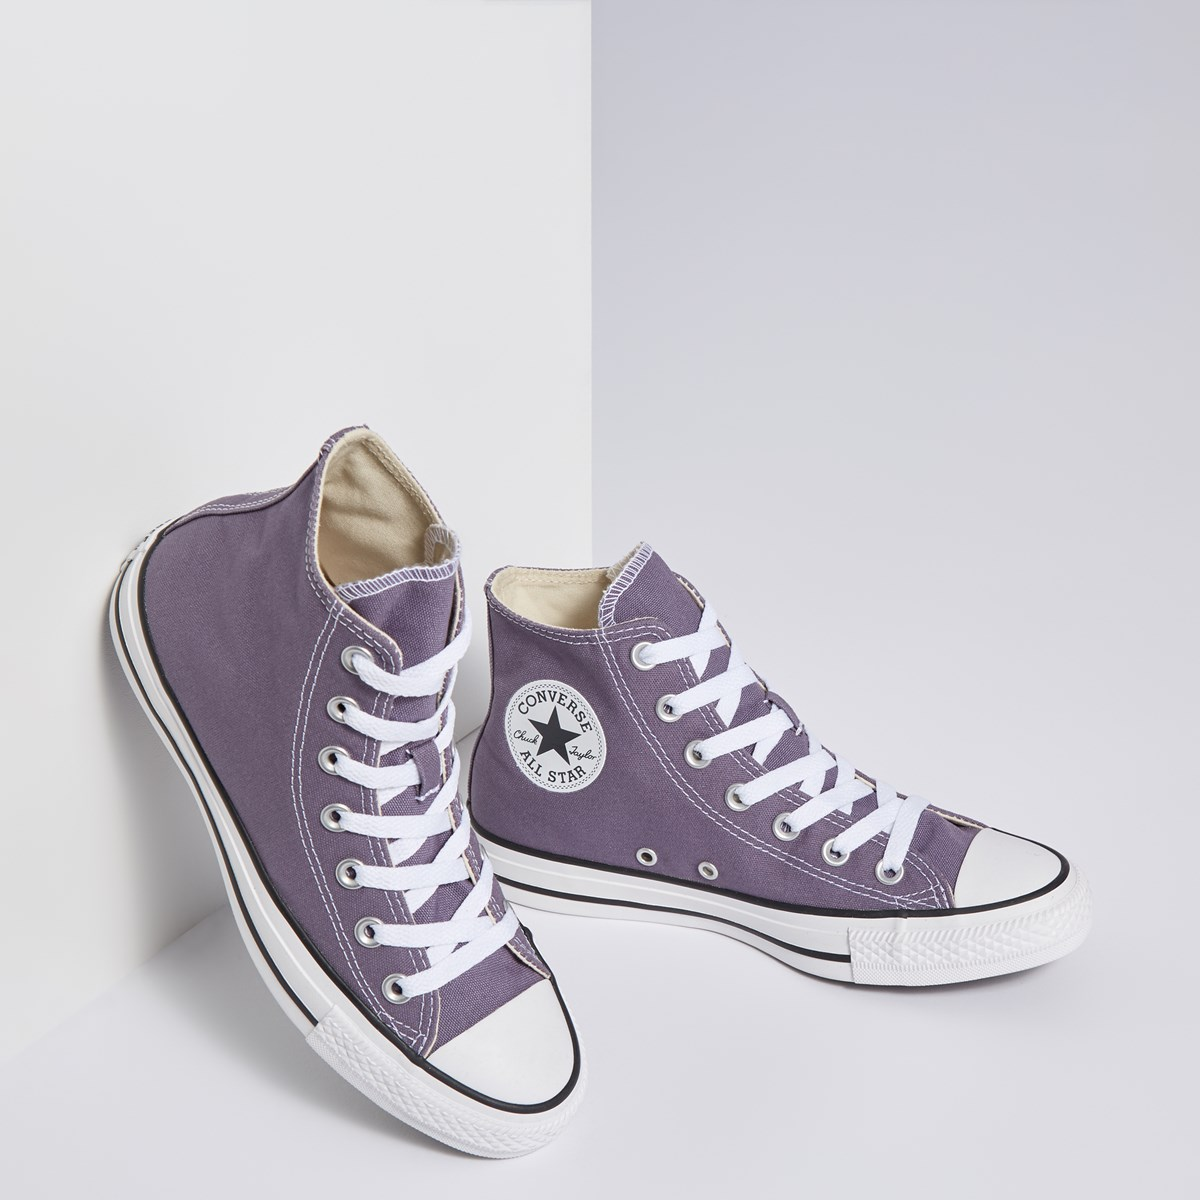 Women's Chuck Taylor All Star High-top Sneakers in Purple